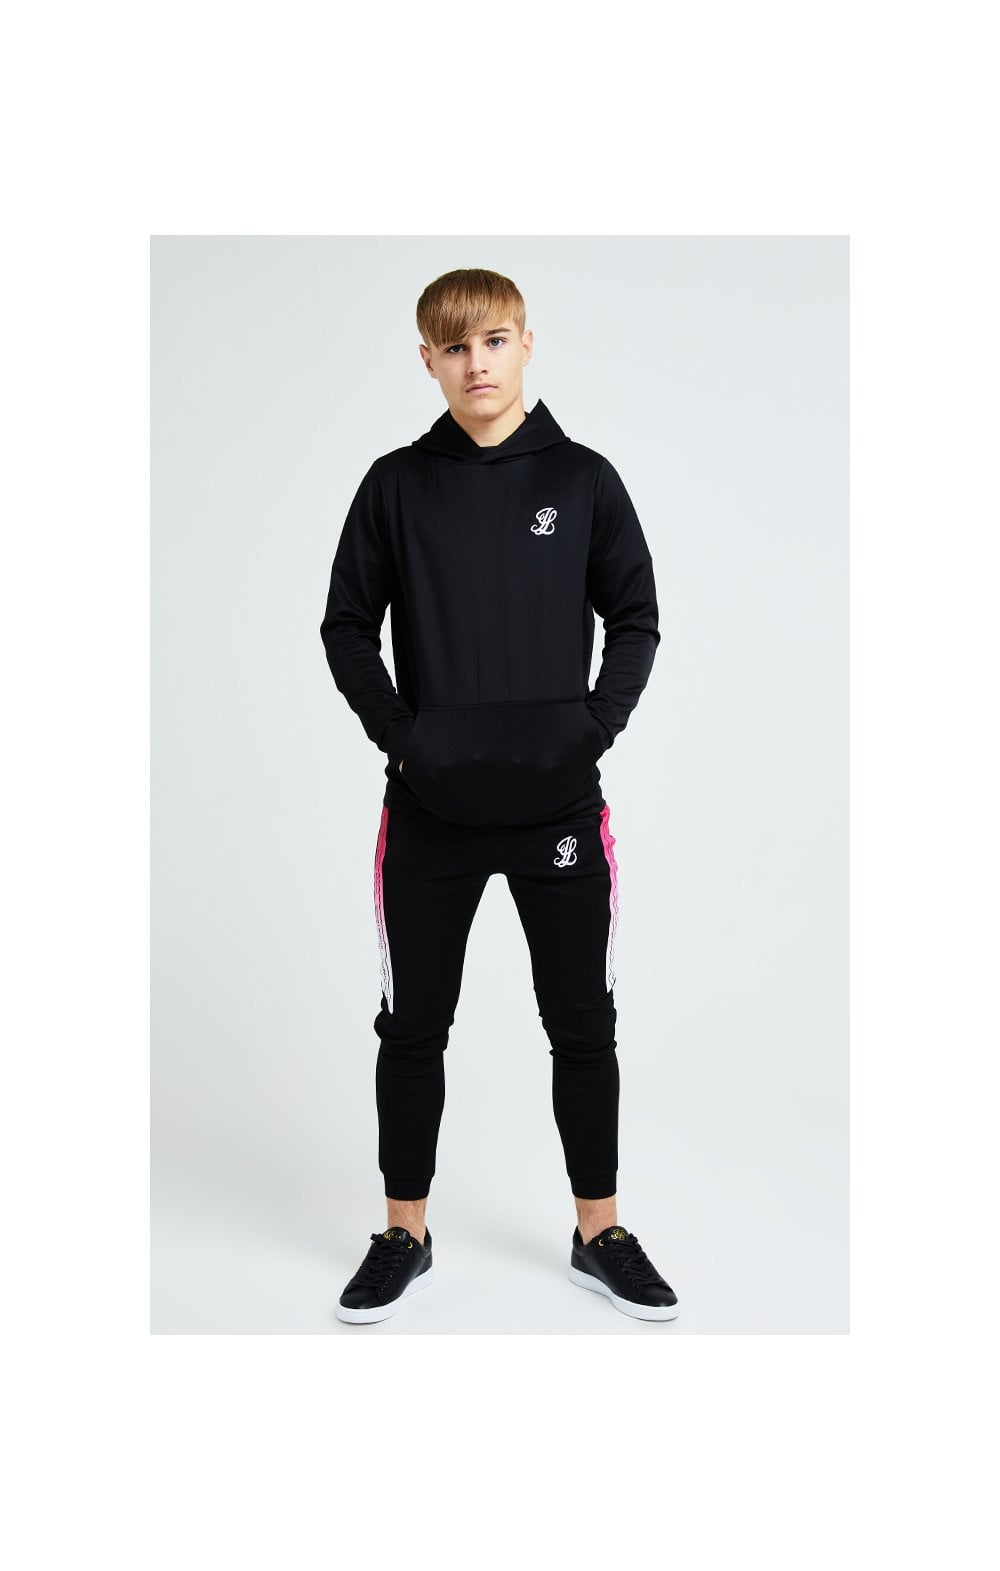 Illusive London Flux Taped Overhead Hoodie - Black & Pink (5)